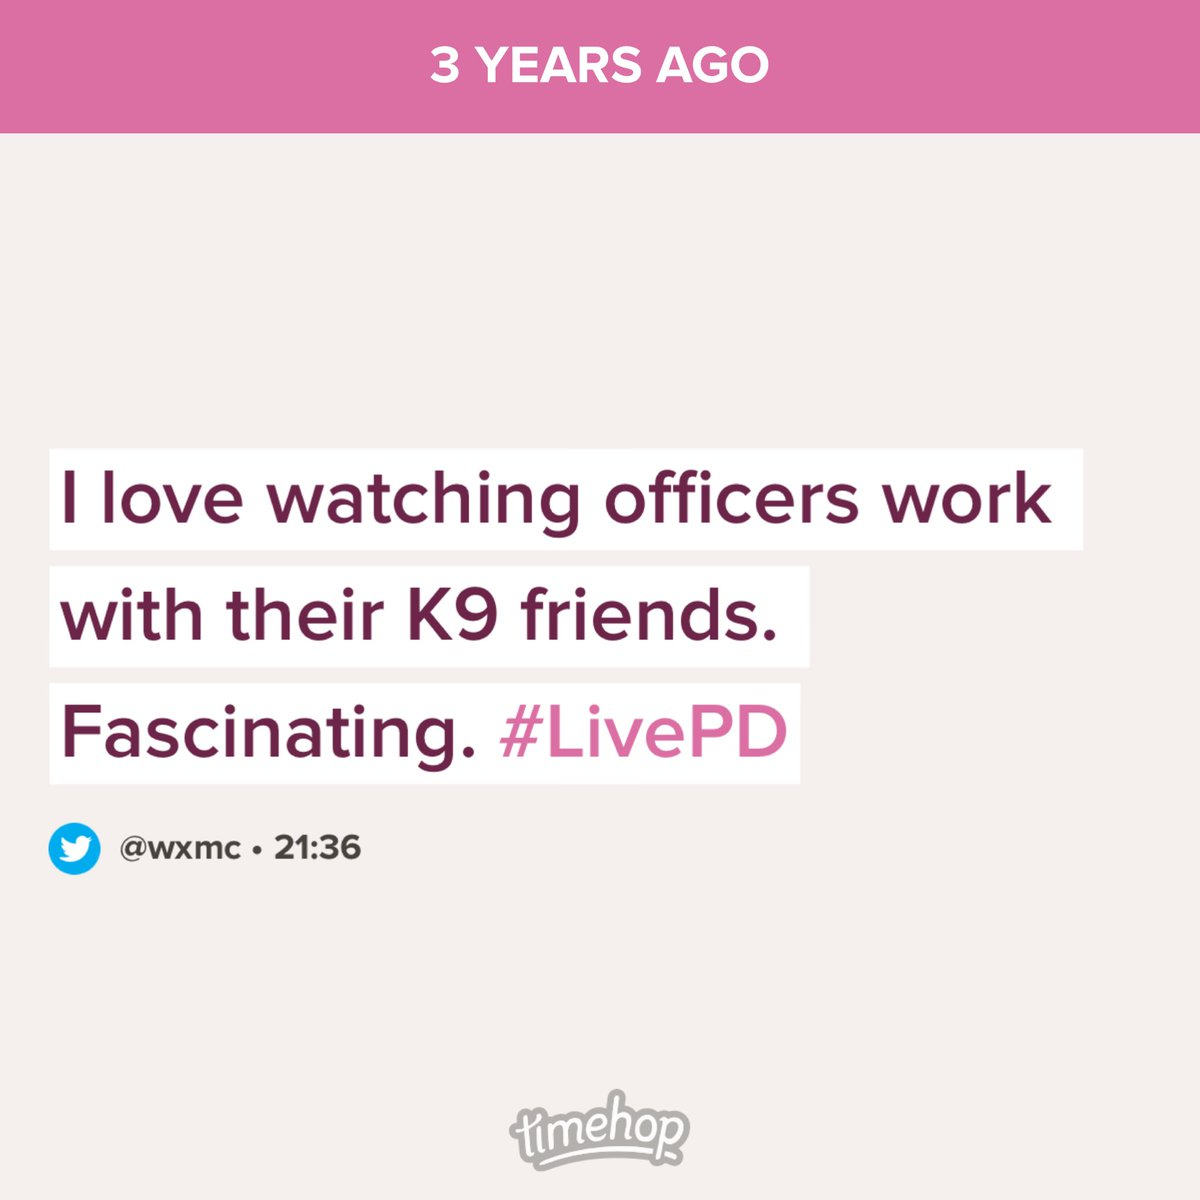 One major thing we miss because #LivePD got unceremoniously dumped. I miss the K9s. https://t.co/O1yis6u38g